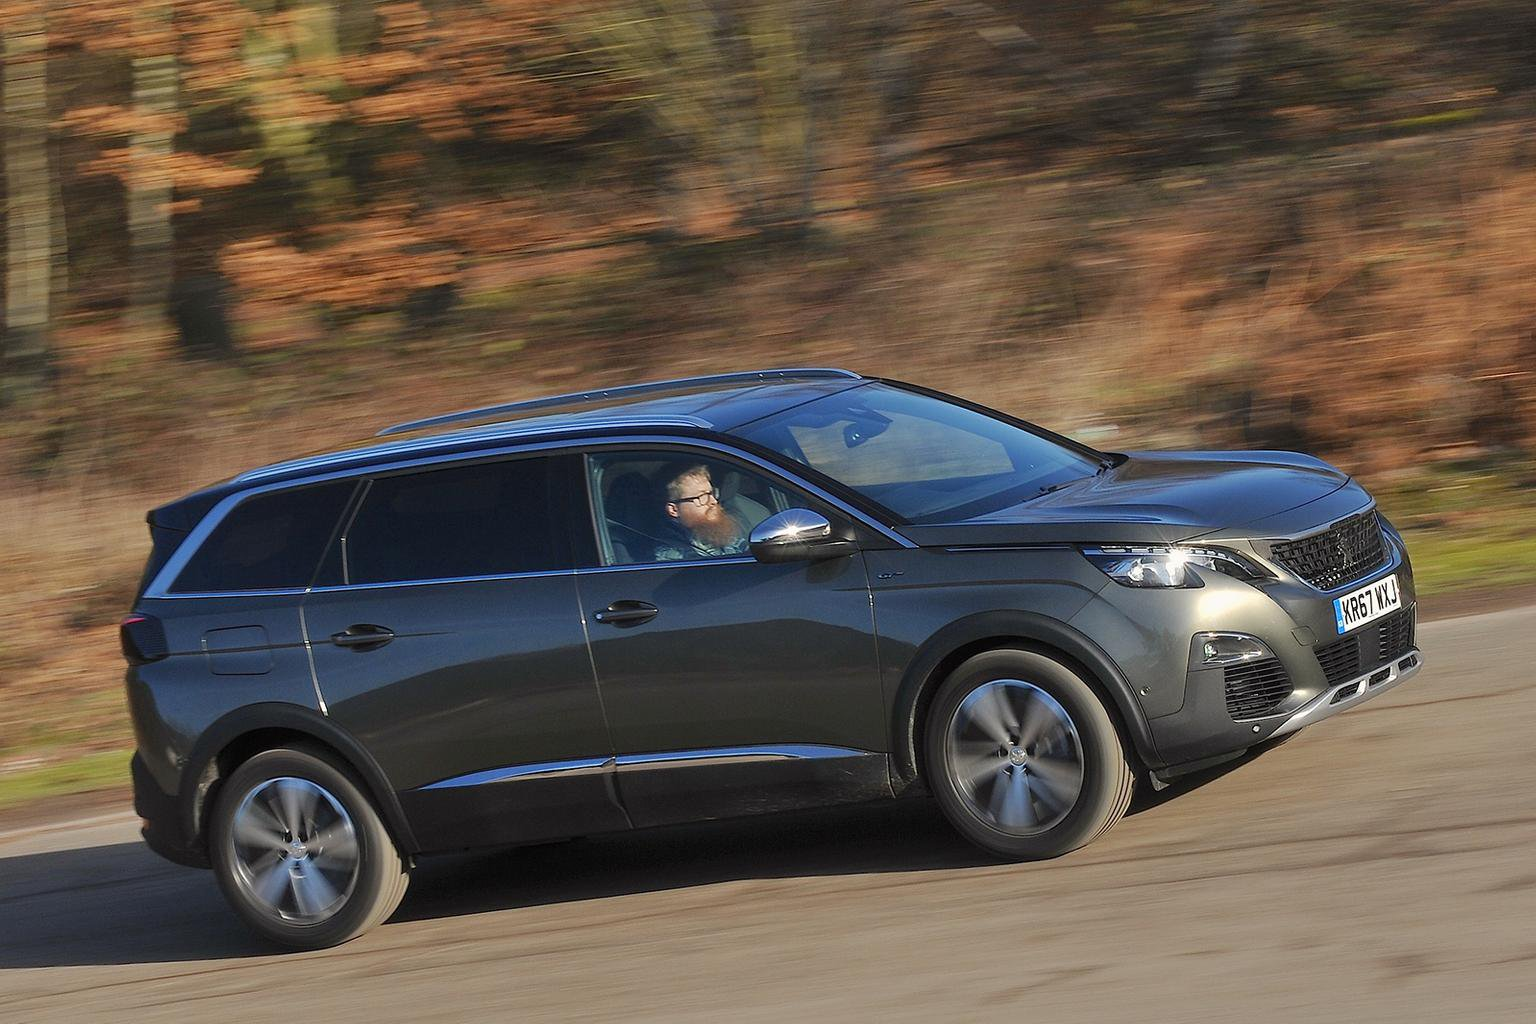 Used Peugeot 5008 Review - 2017-present